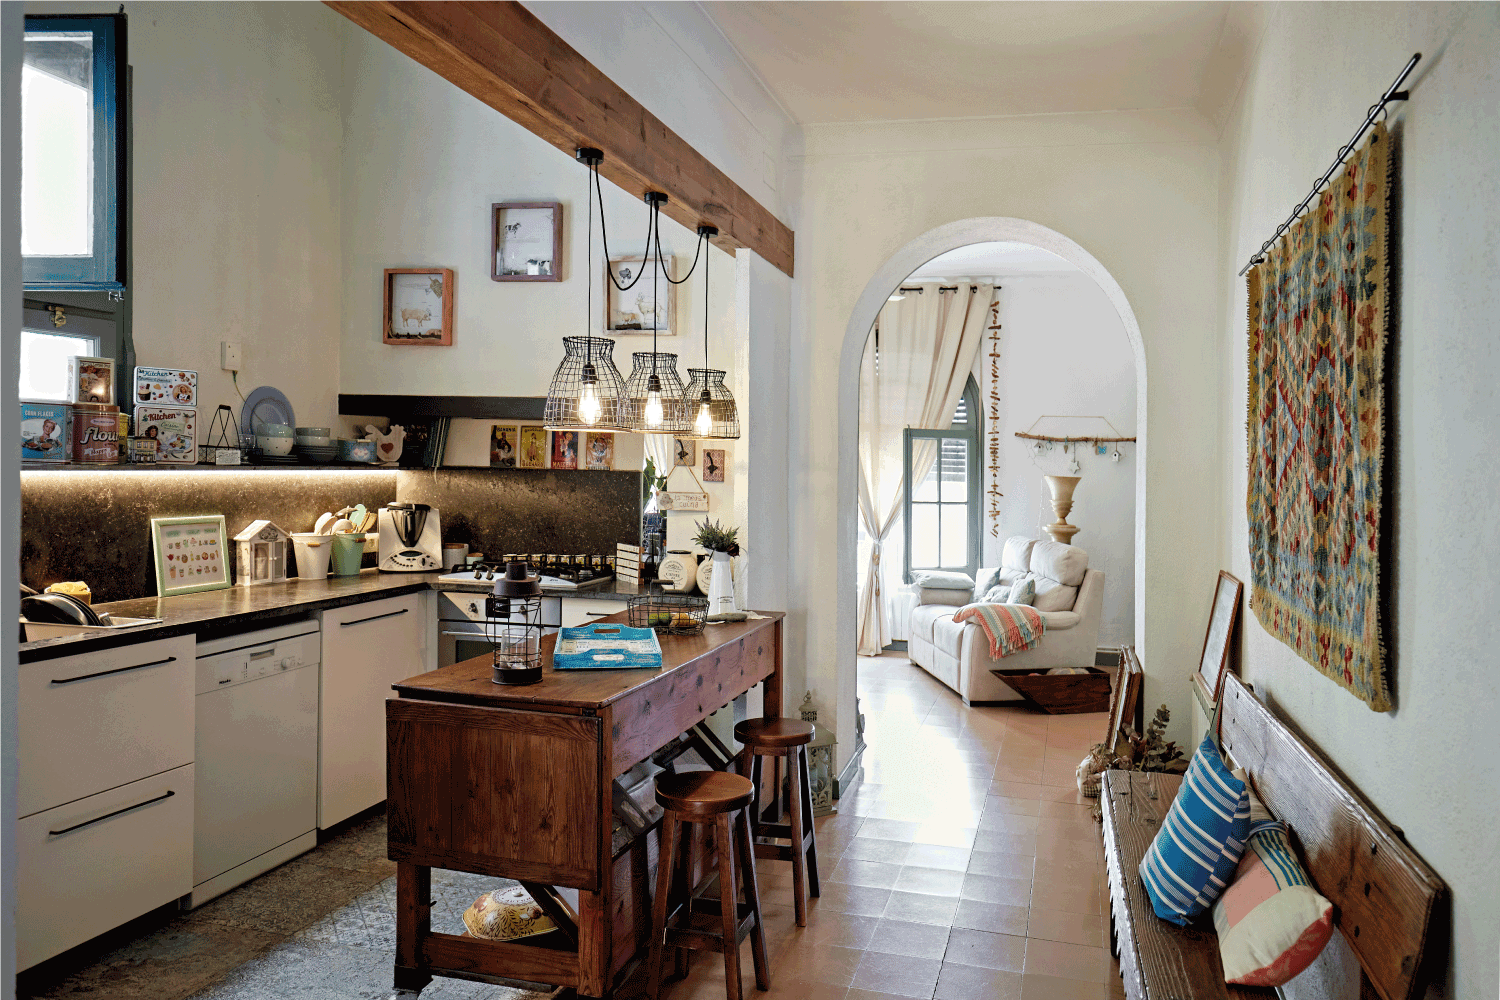 Wide angle view of kitchen with wooden counter-height dining table and stools, hanging light fixtures, bench